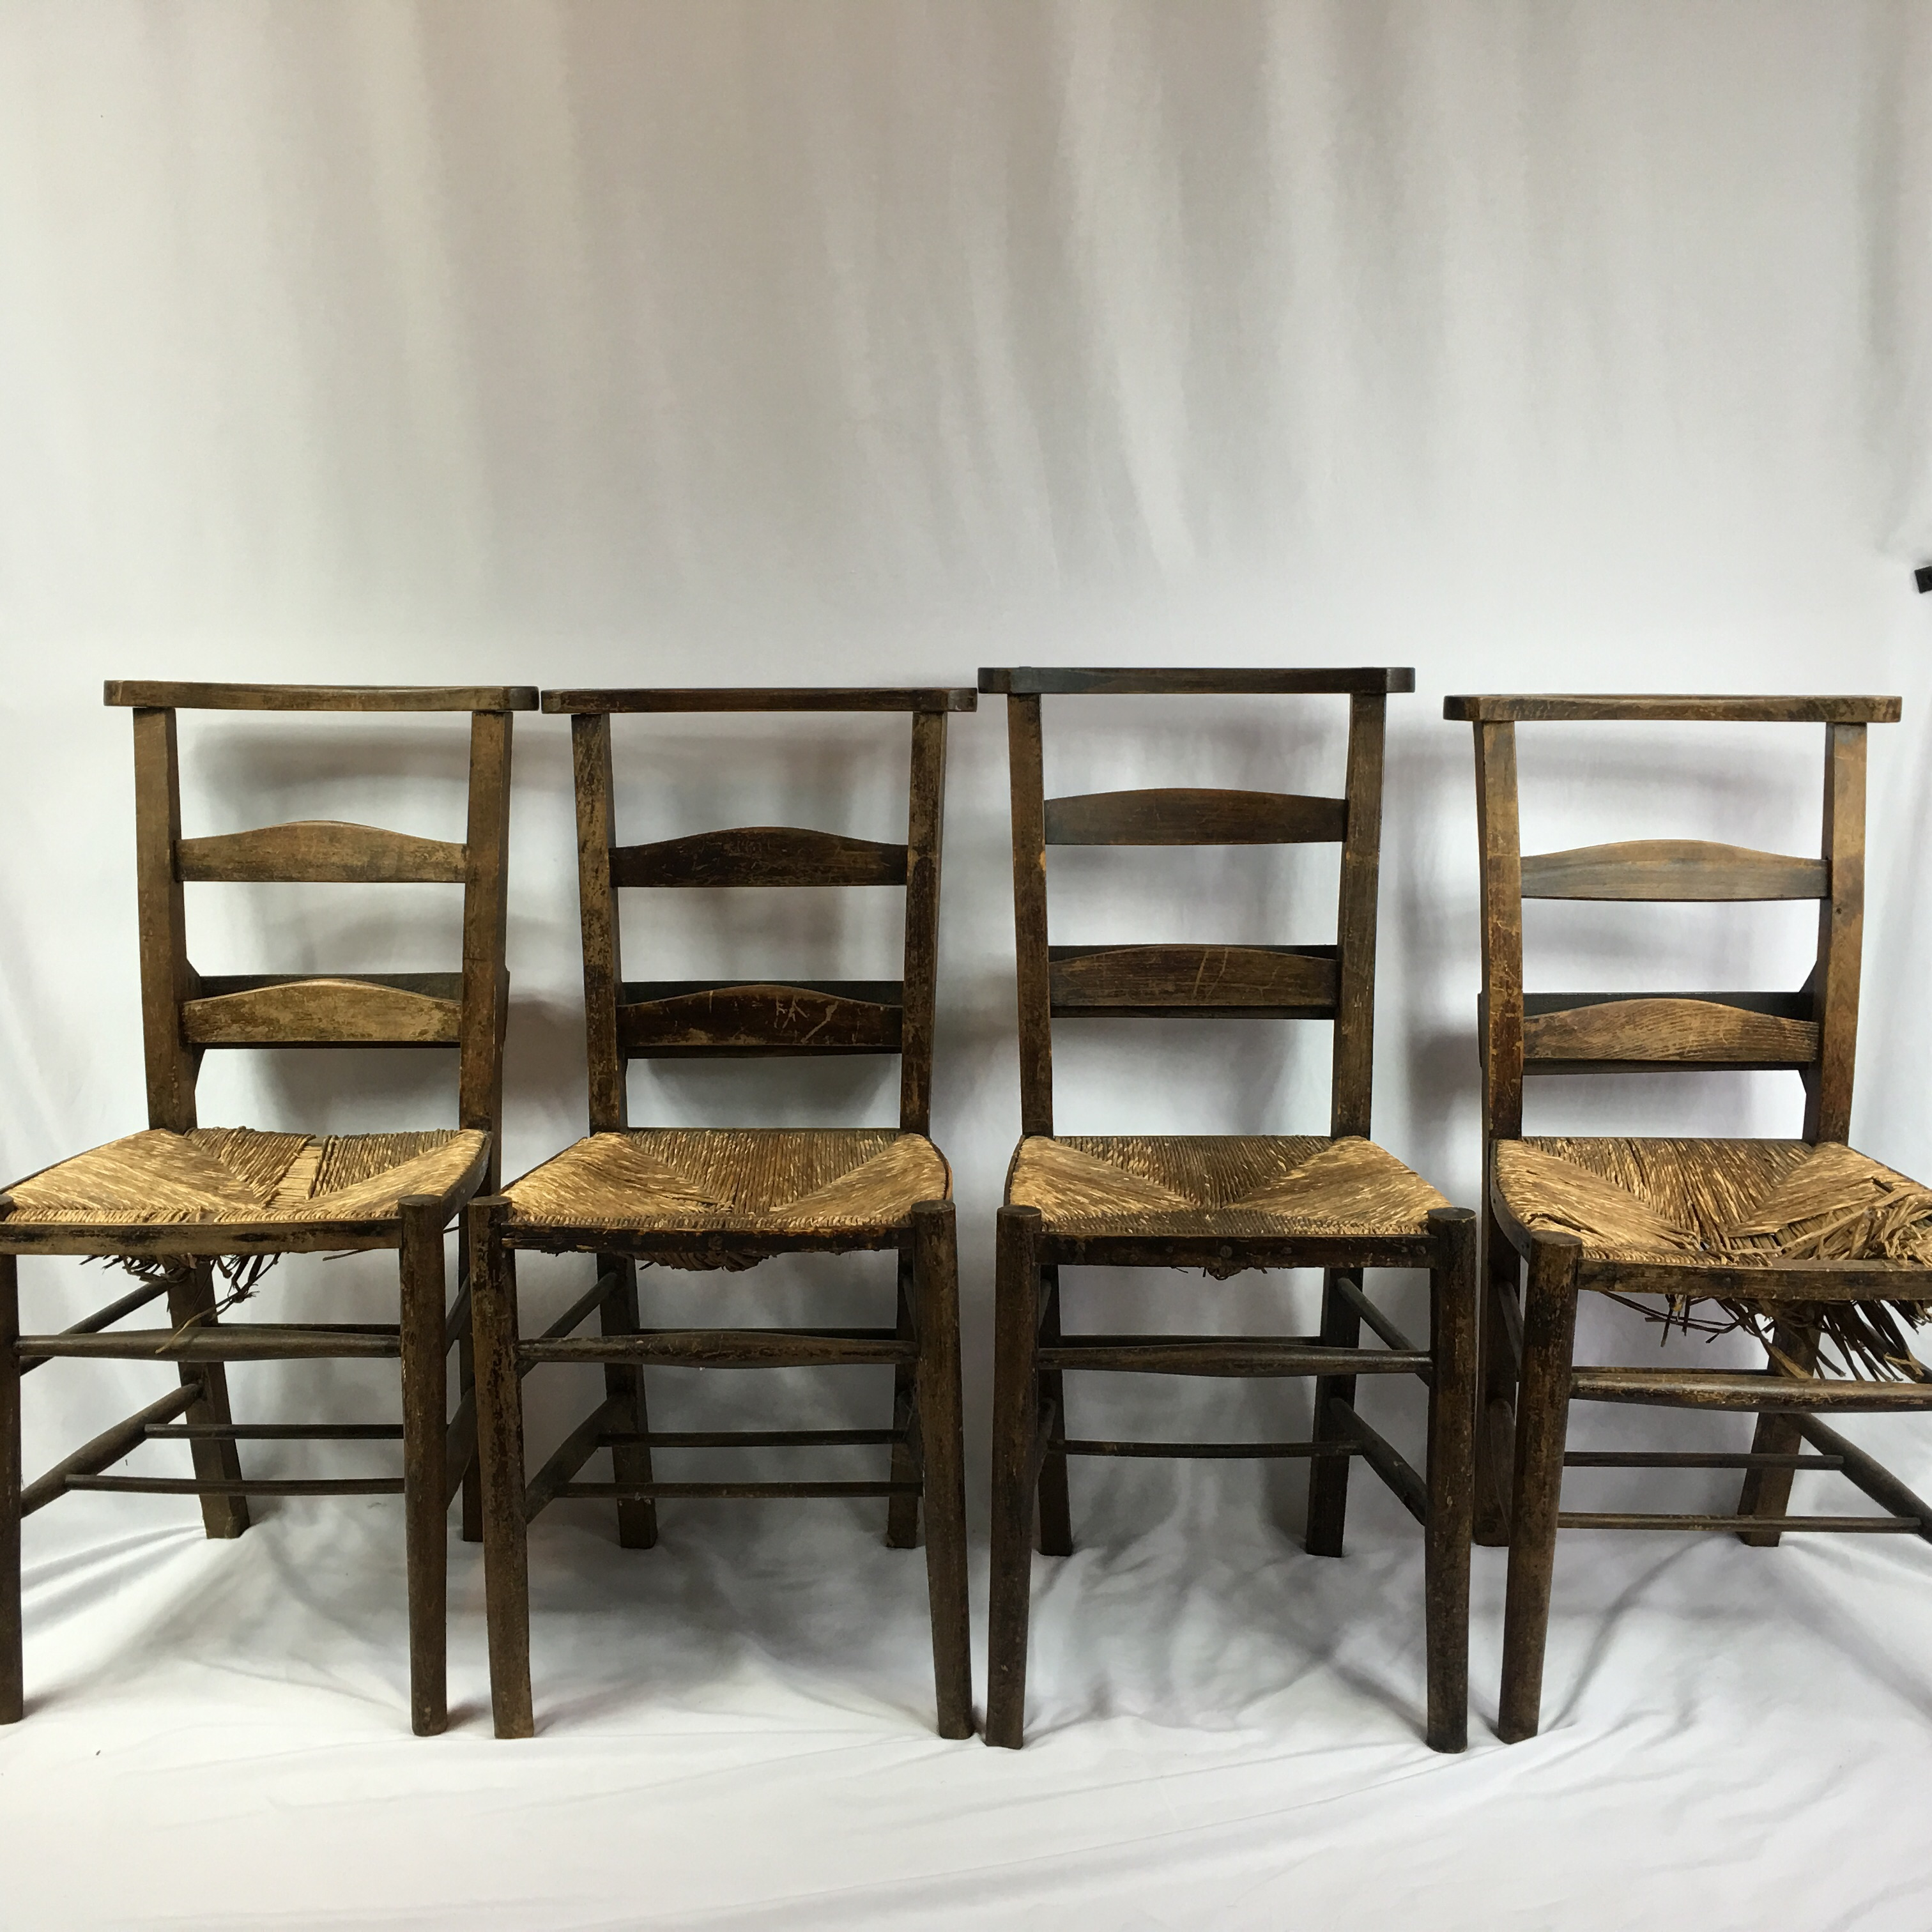 antique primitive shaker church chairs set of 4 image 5 of 11